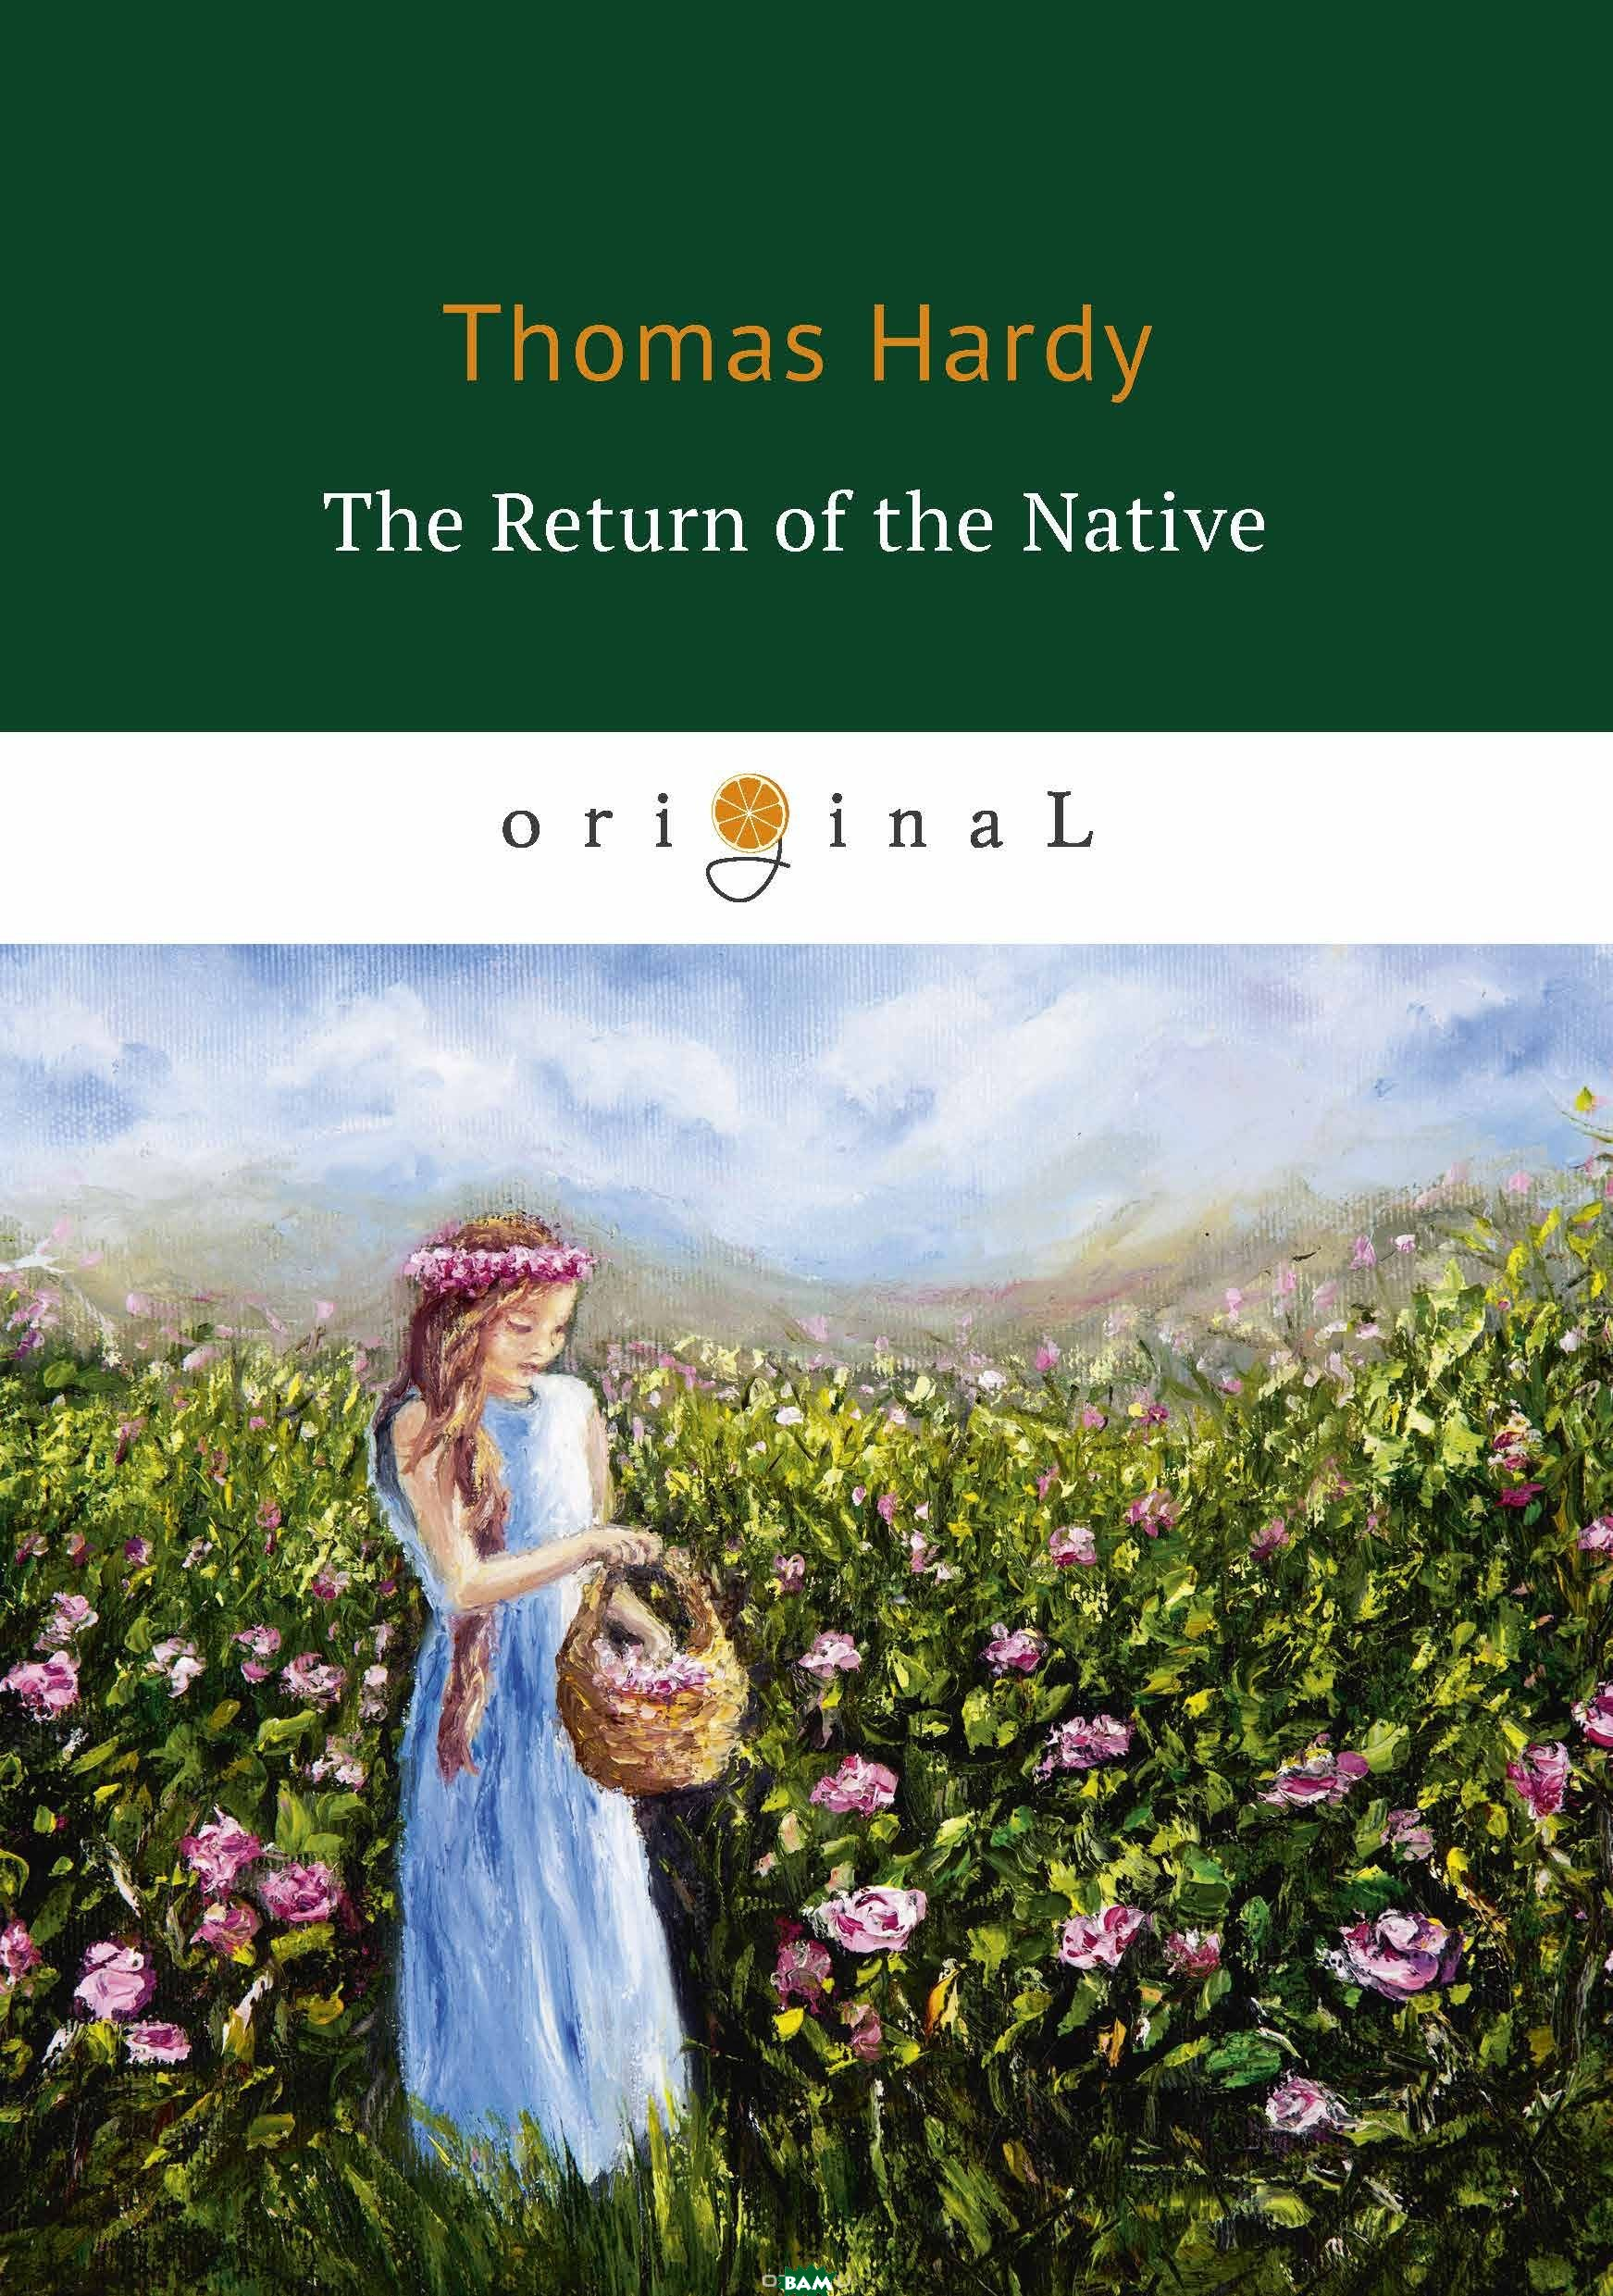 Купить The Return of the Native, T8RUGRAM, Hardy Thomas, 978-5-521-06906-4